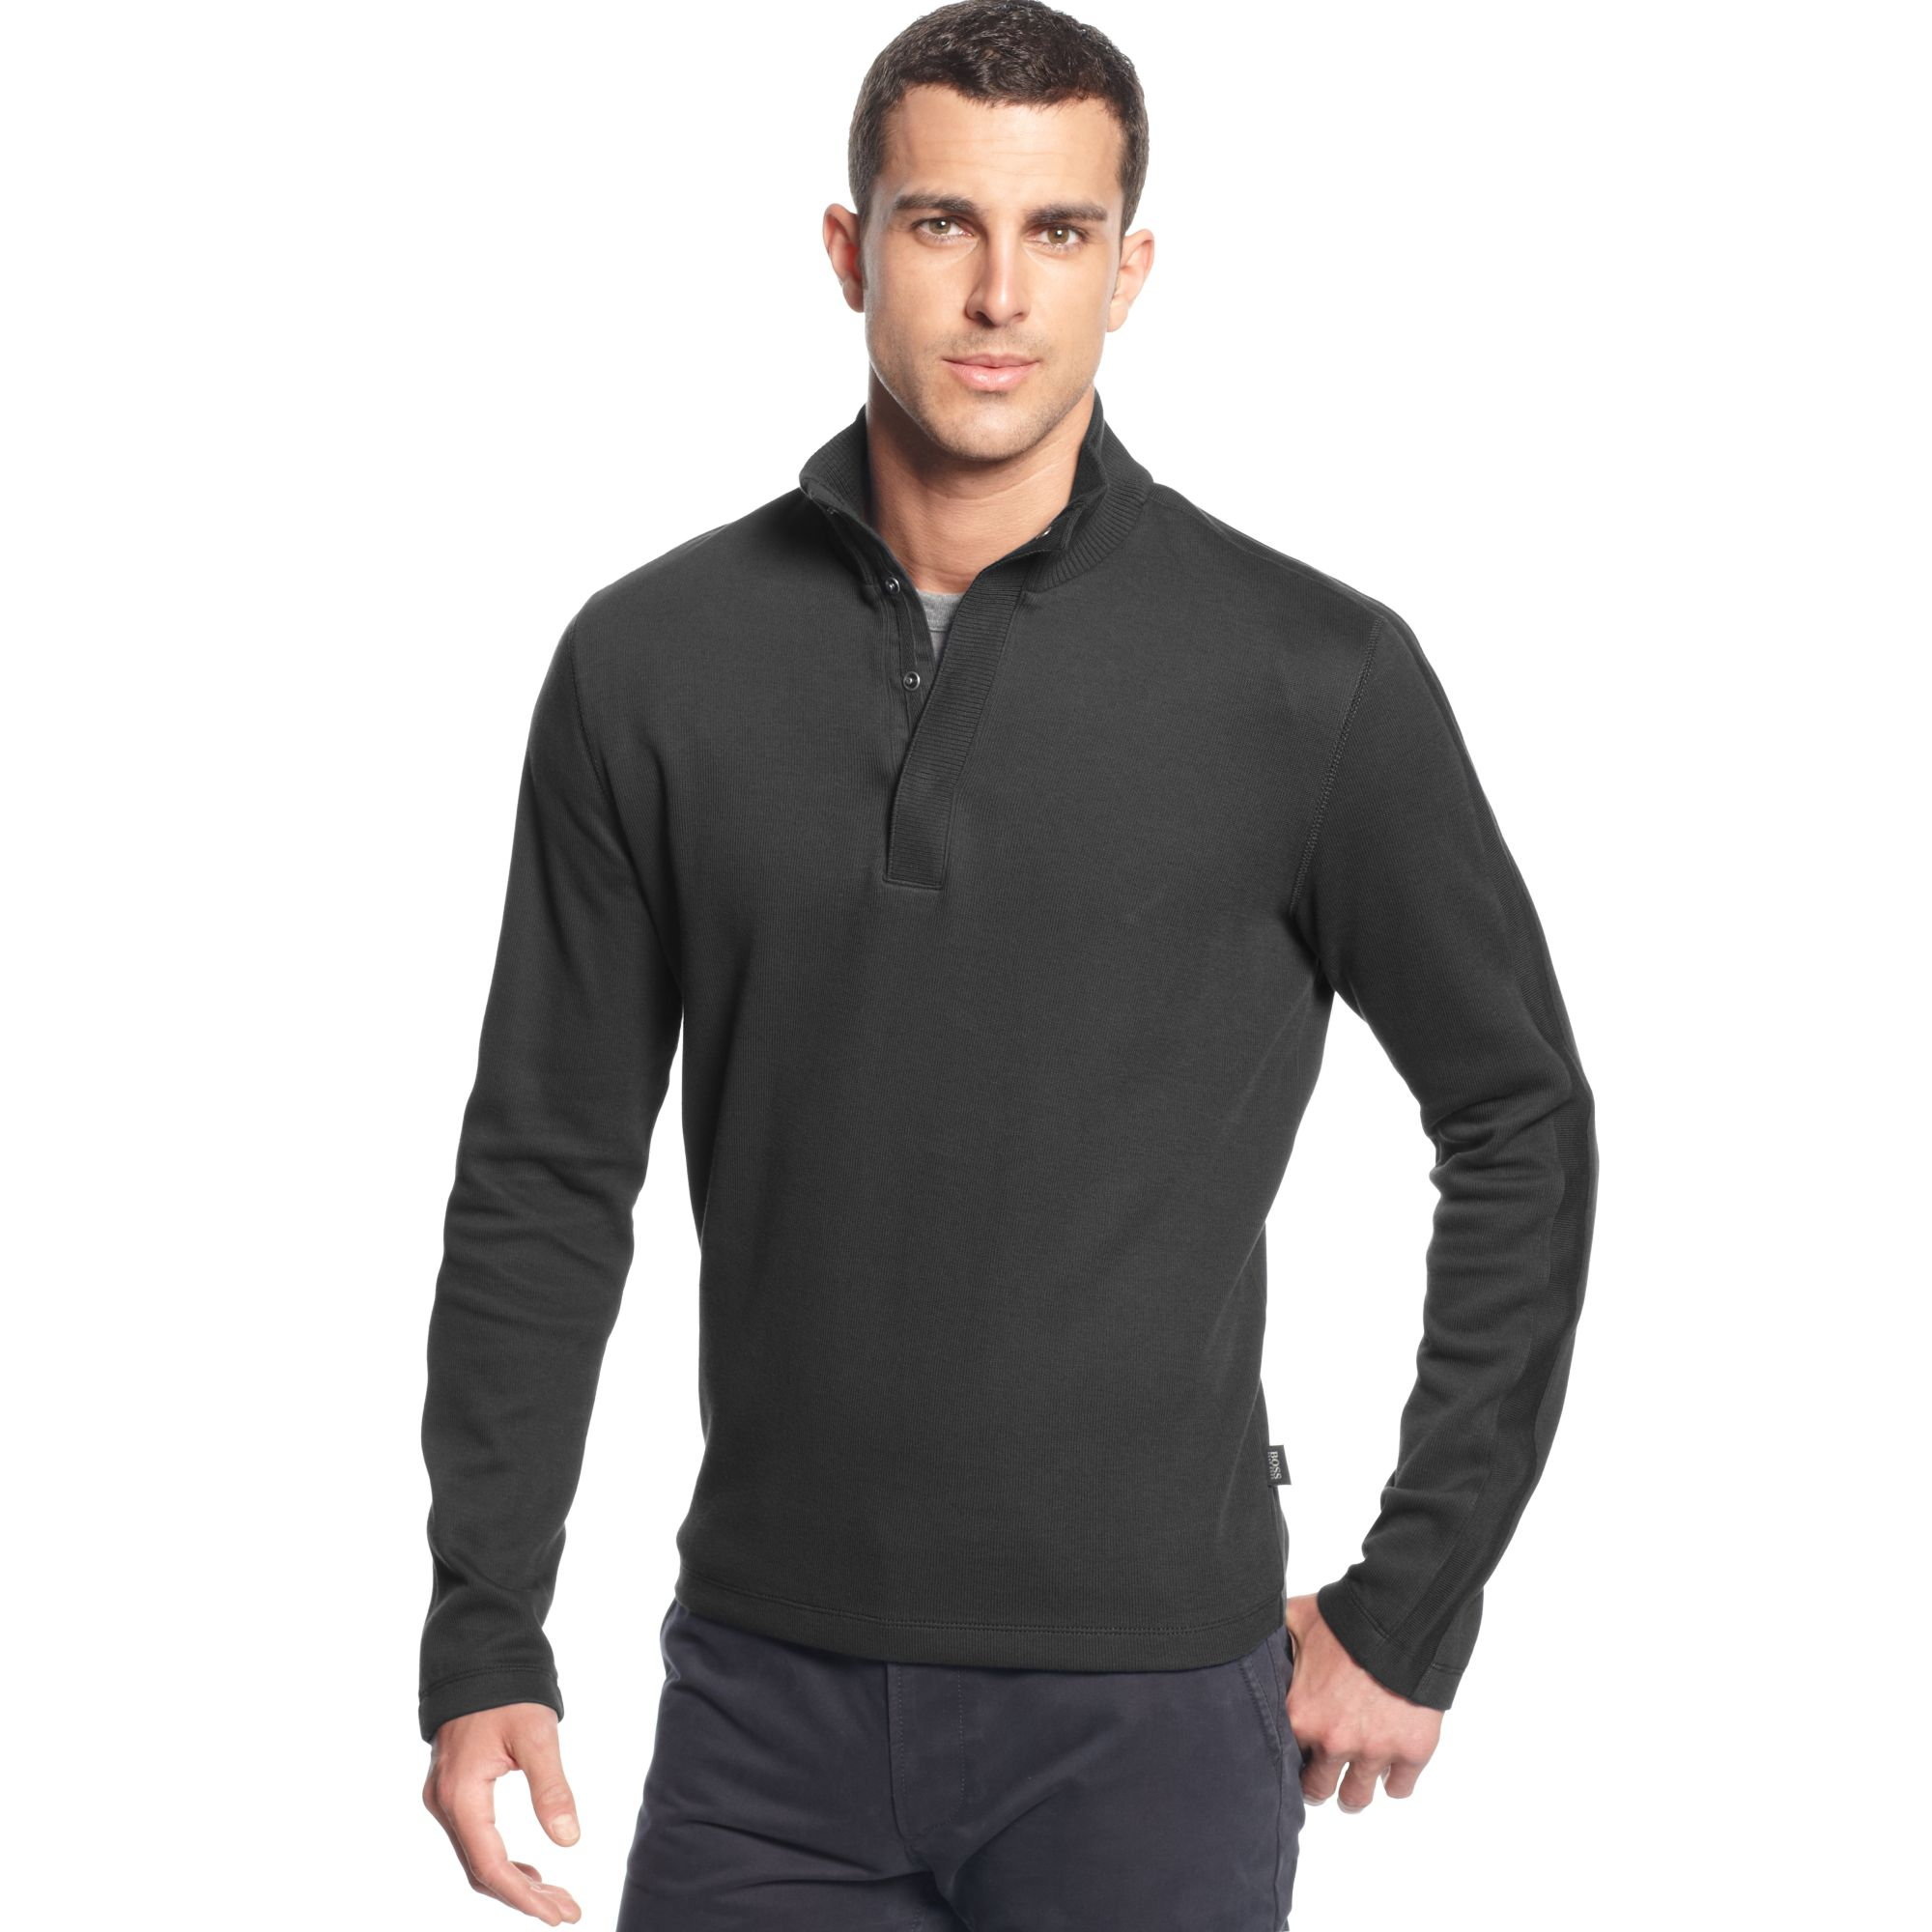 hugo boss boss sweater core piceno snap button sweater in gray for men. Black Bedroom Furniture Sets. Home Design Ideas